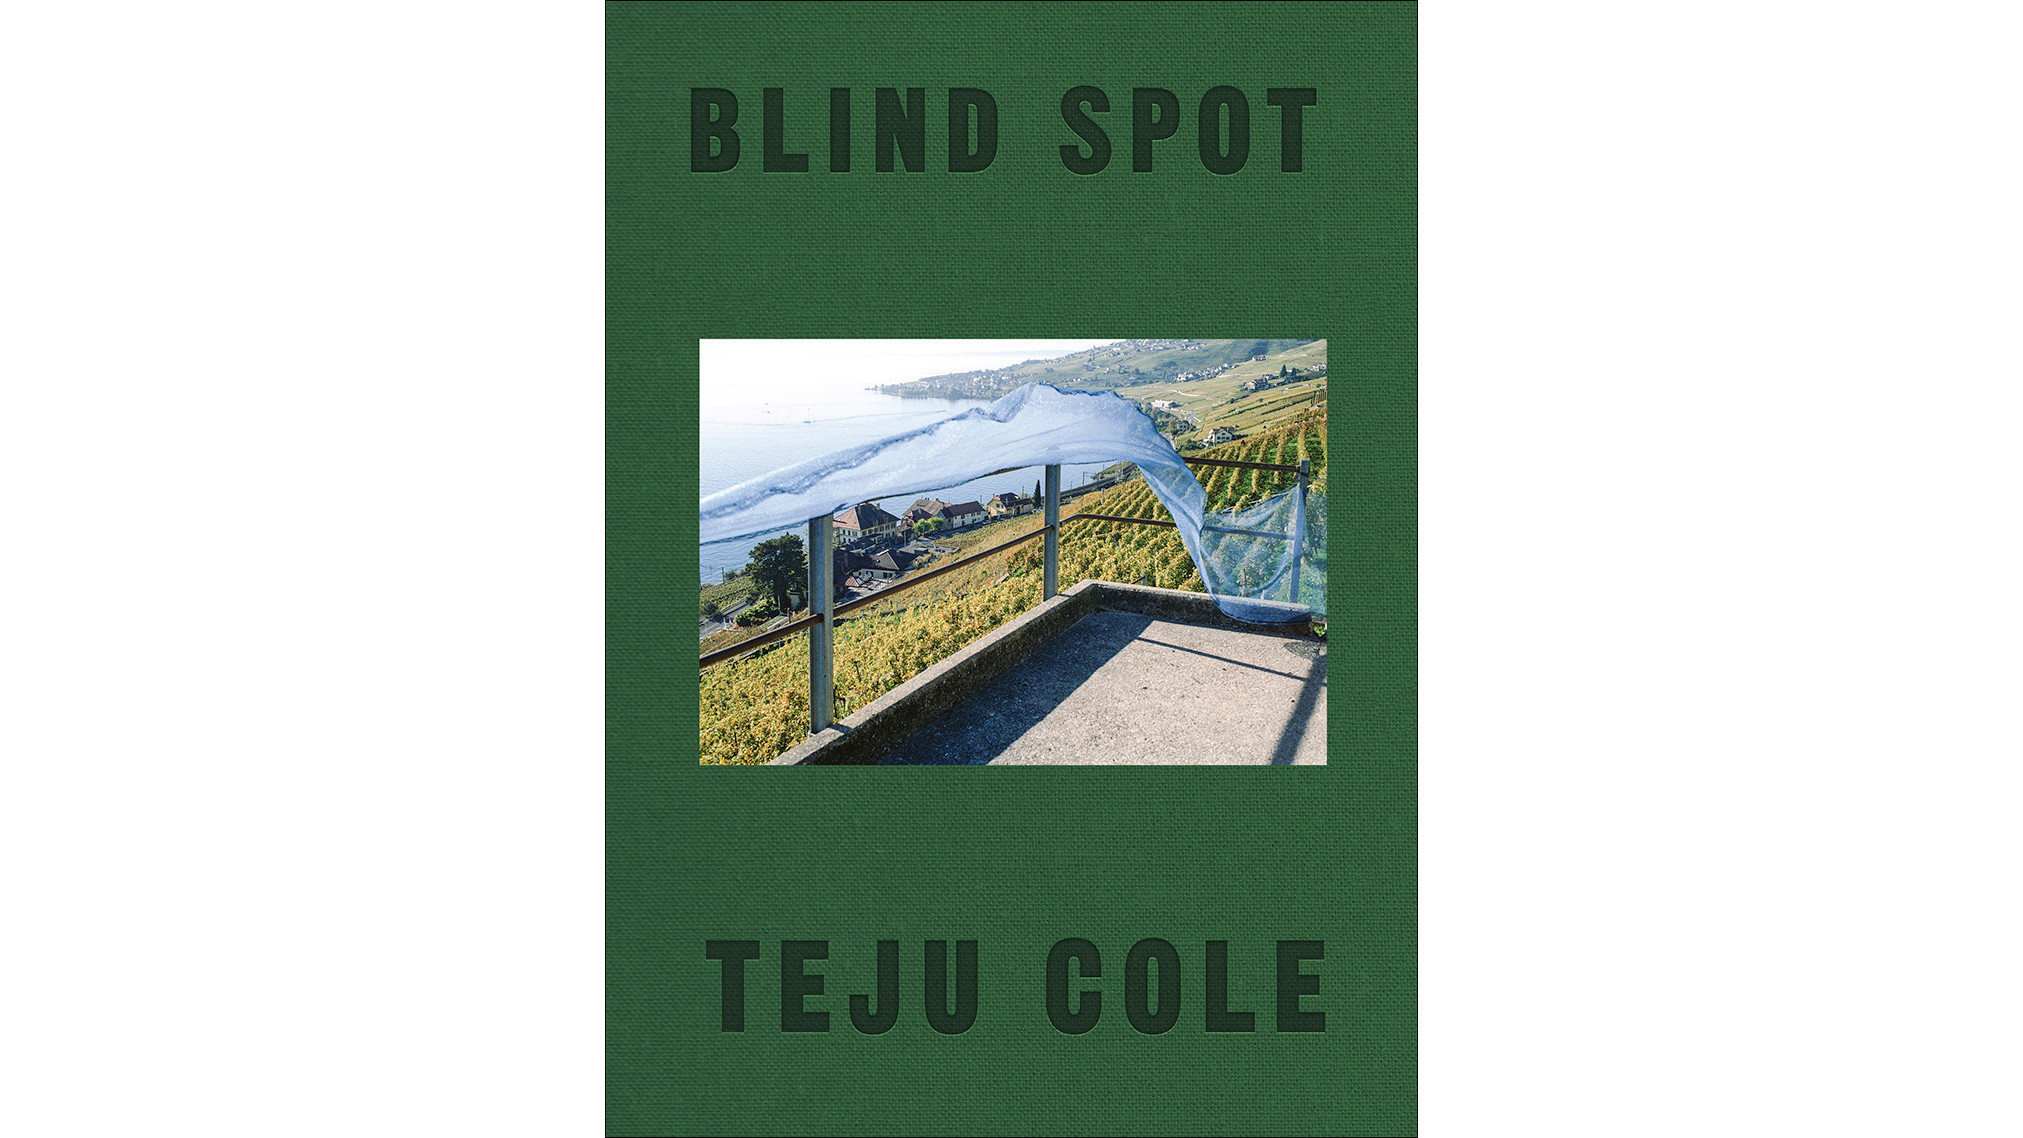 """Blind Spot"" by Teju Cole"